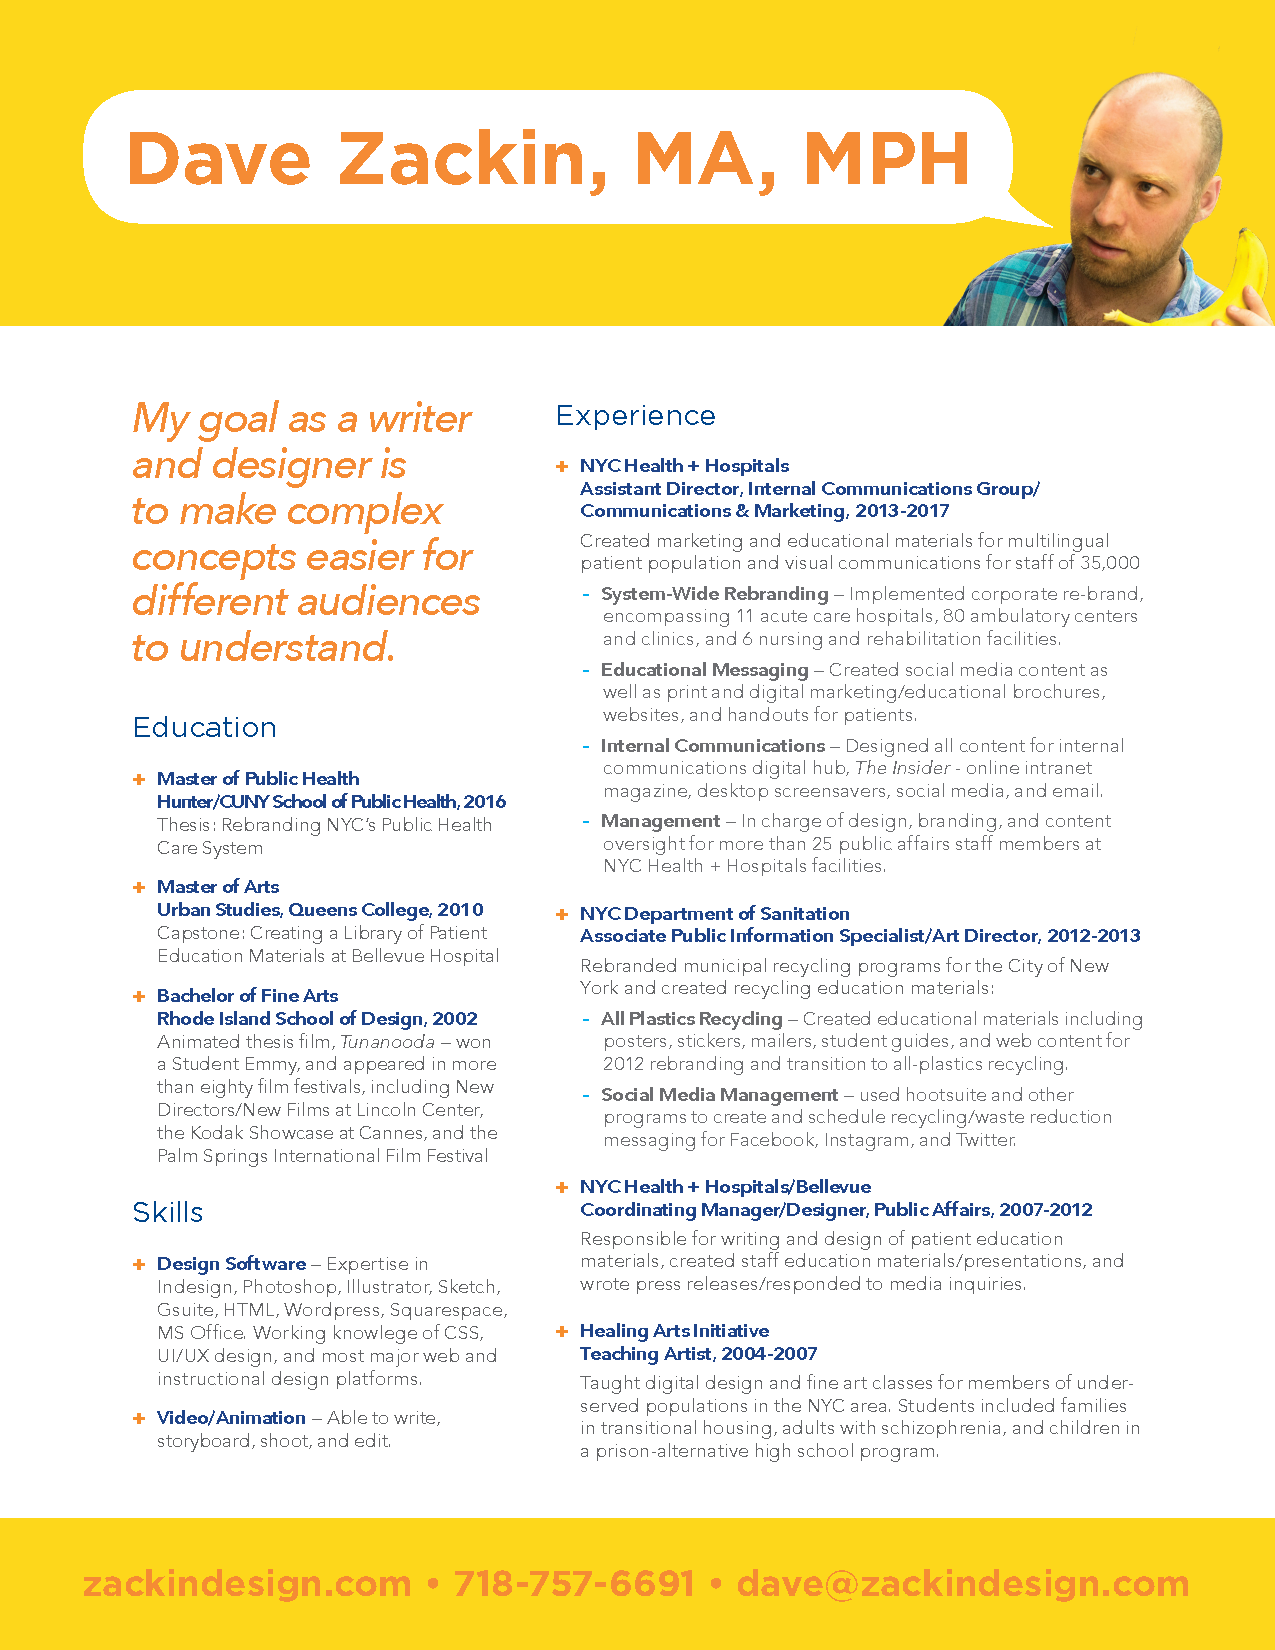 Click here for a printable resume.